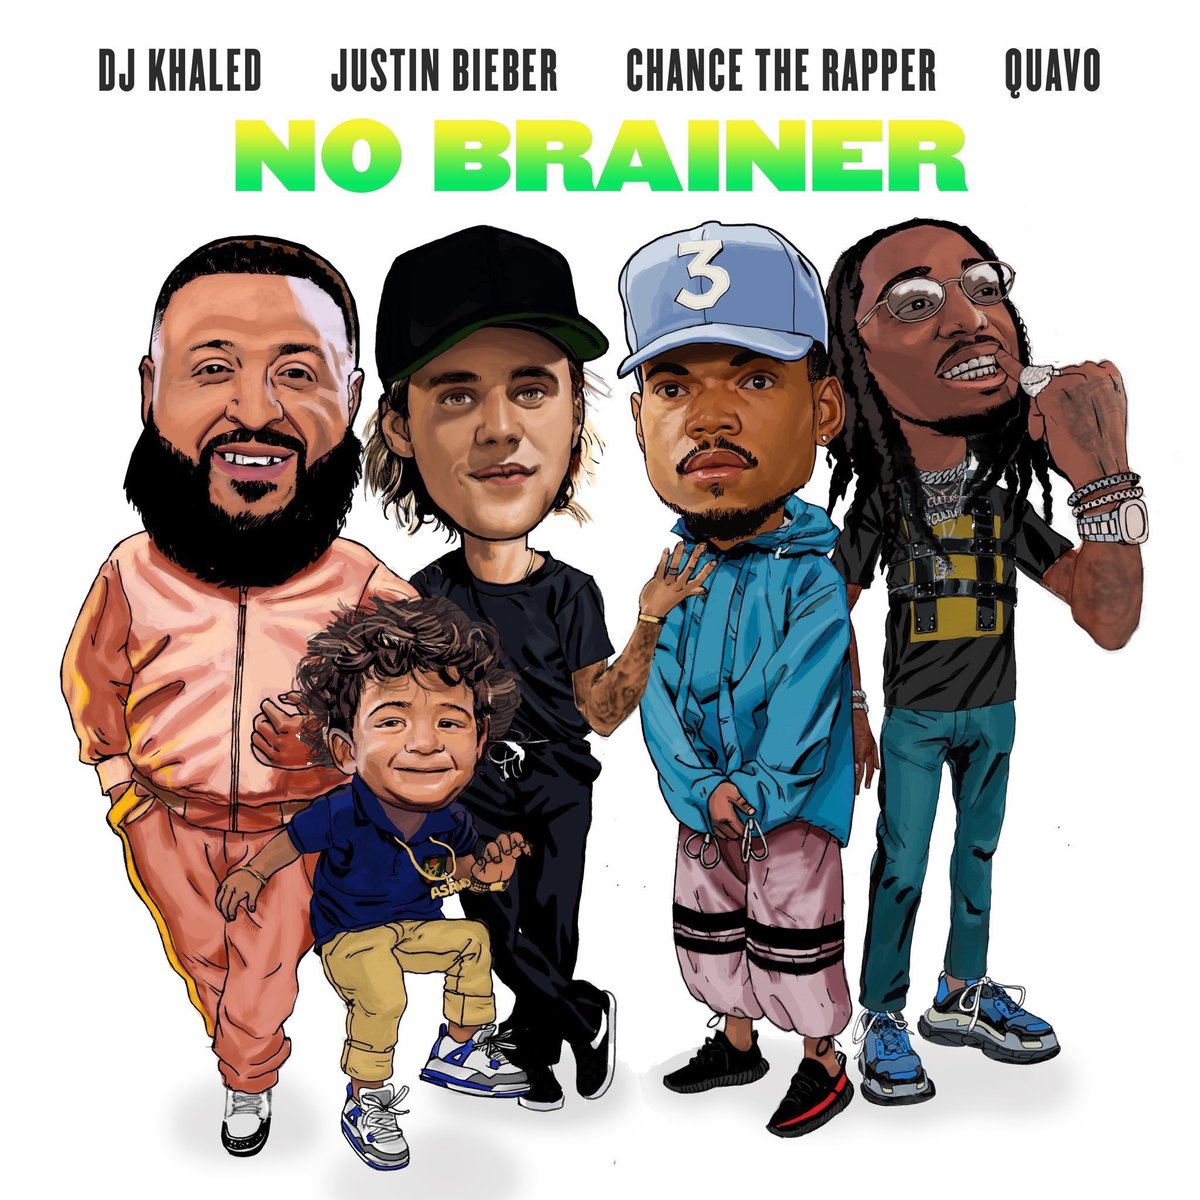 No Brainer by DJ Khaled ft Justin Bieber, Chance the Rapper and Quavo rises from #11 to #10 on the Billboard Hot 100 chart this week. <br>http://pic.twitter.com/MBBMFe2M7p